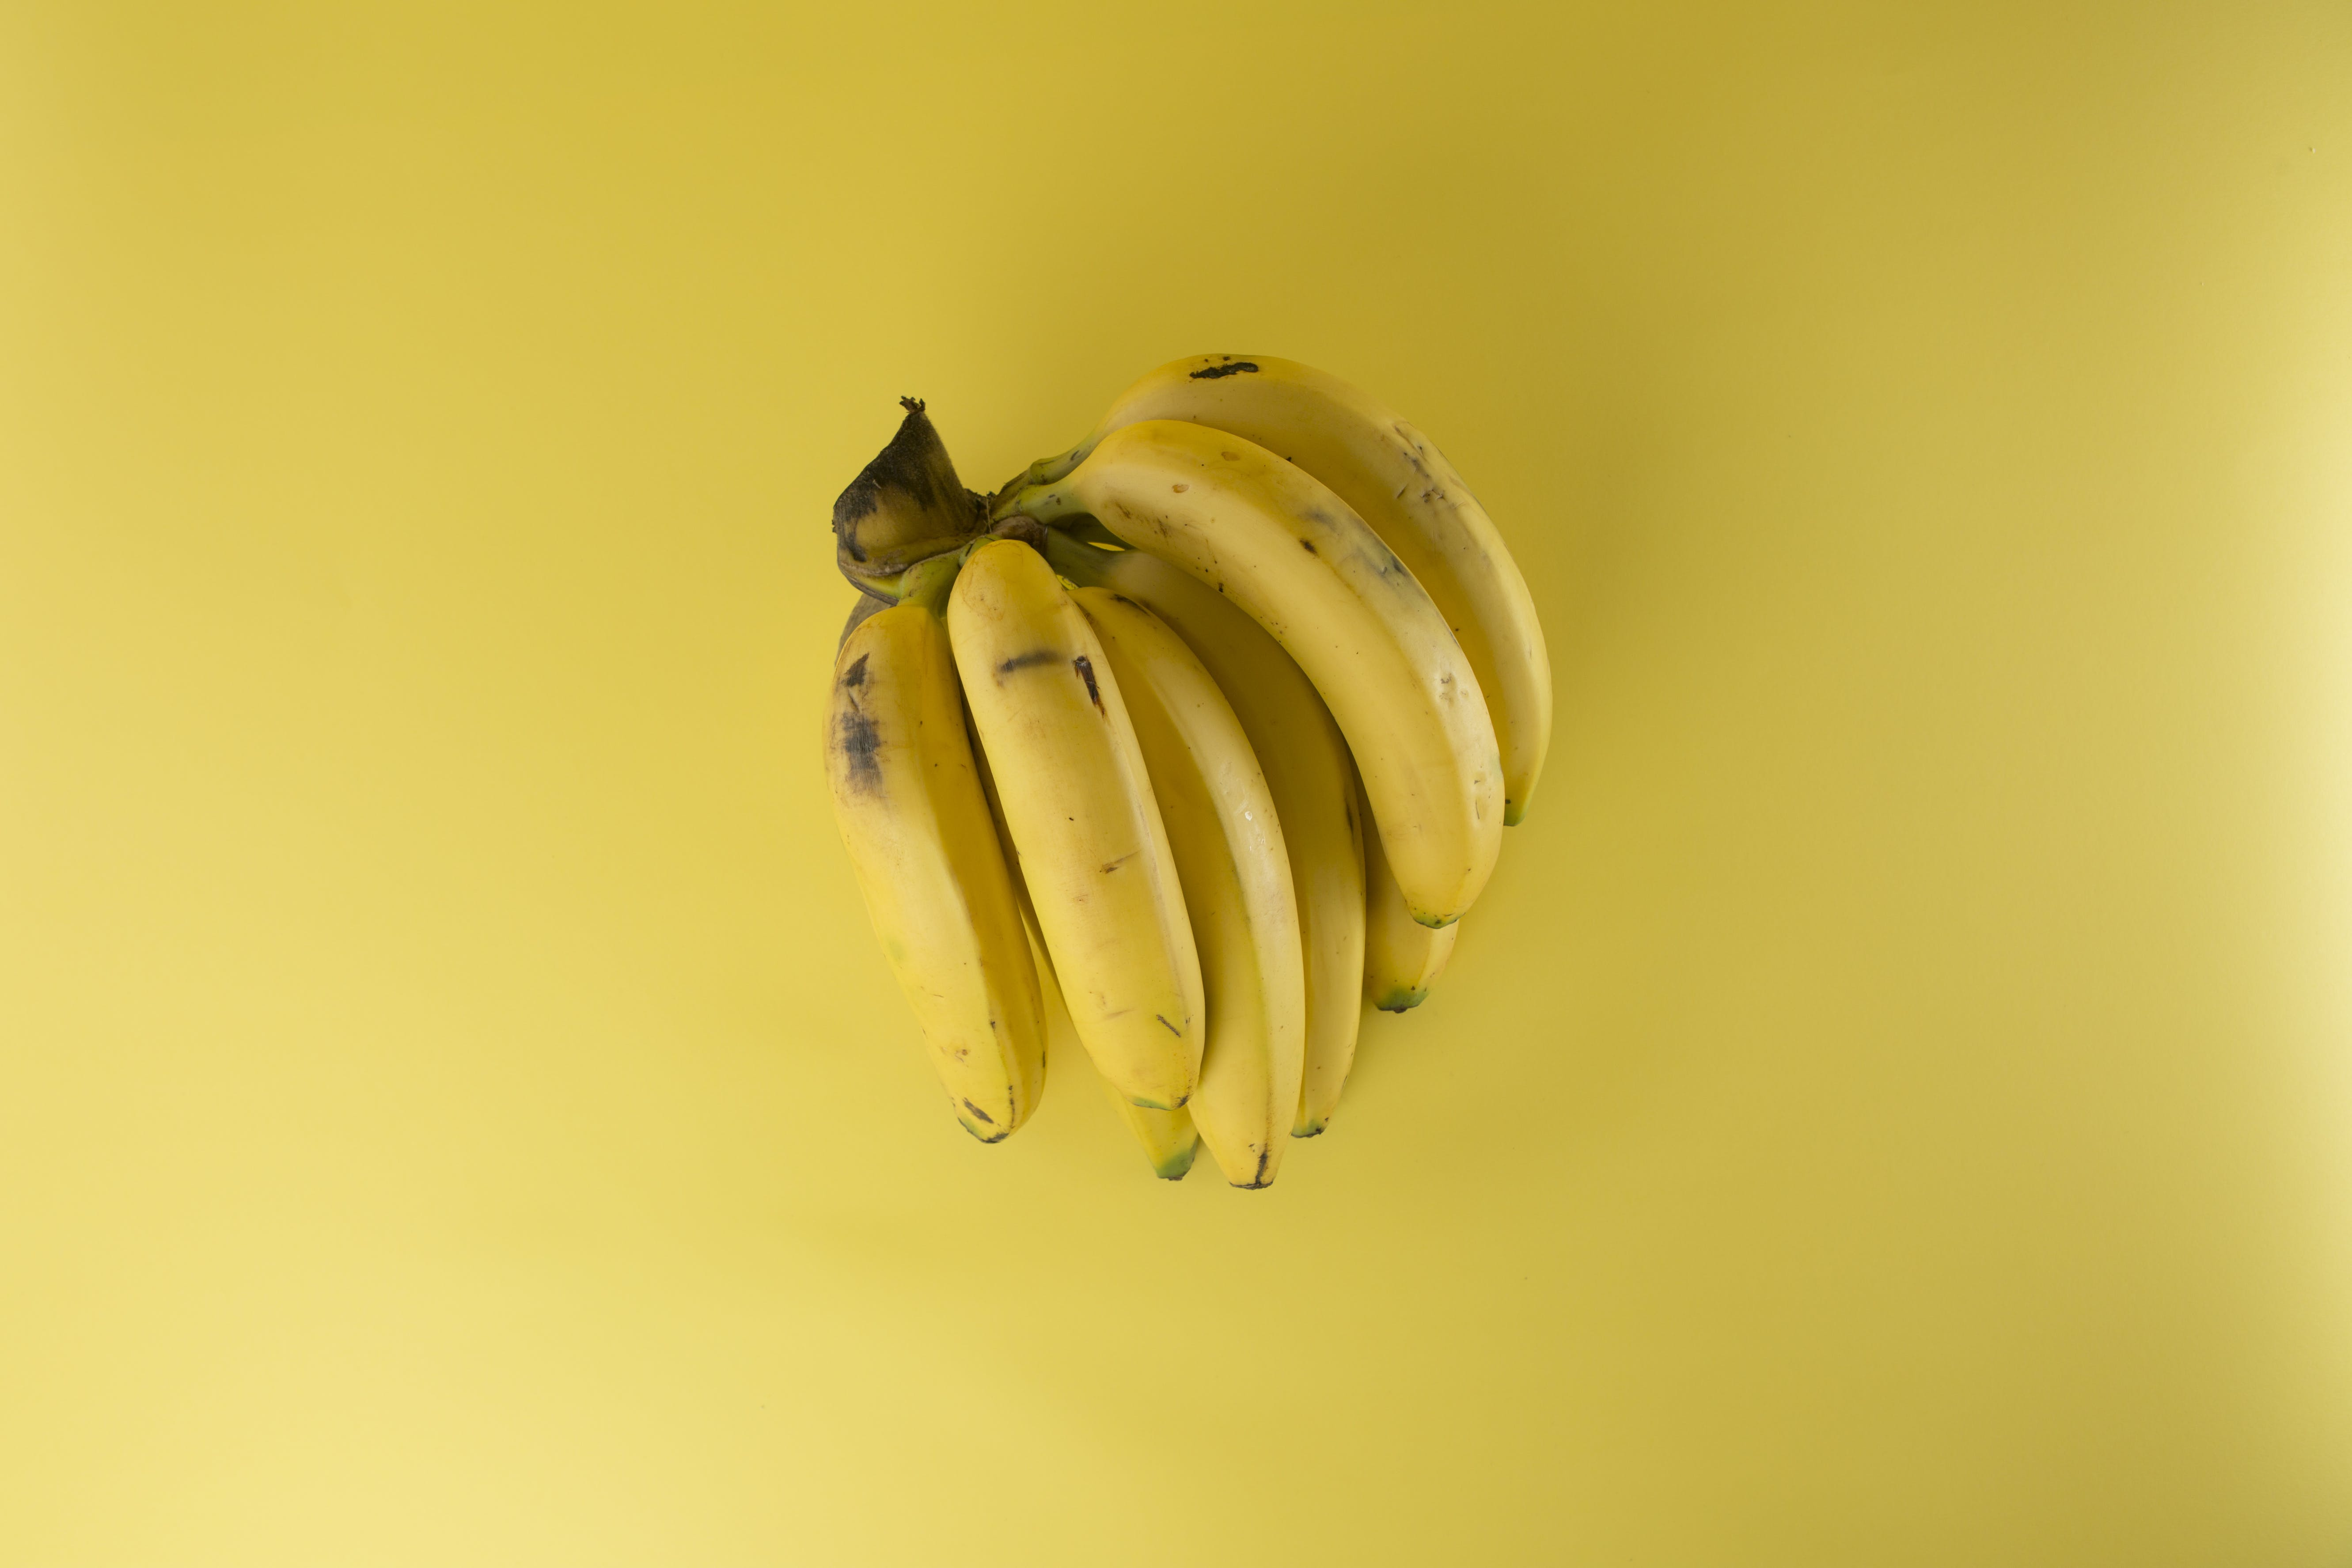 Free stock photo of food, healthy, yellow, fruits